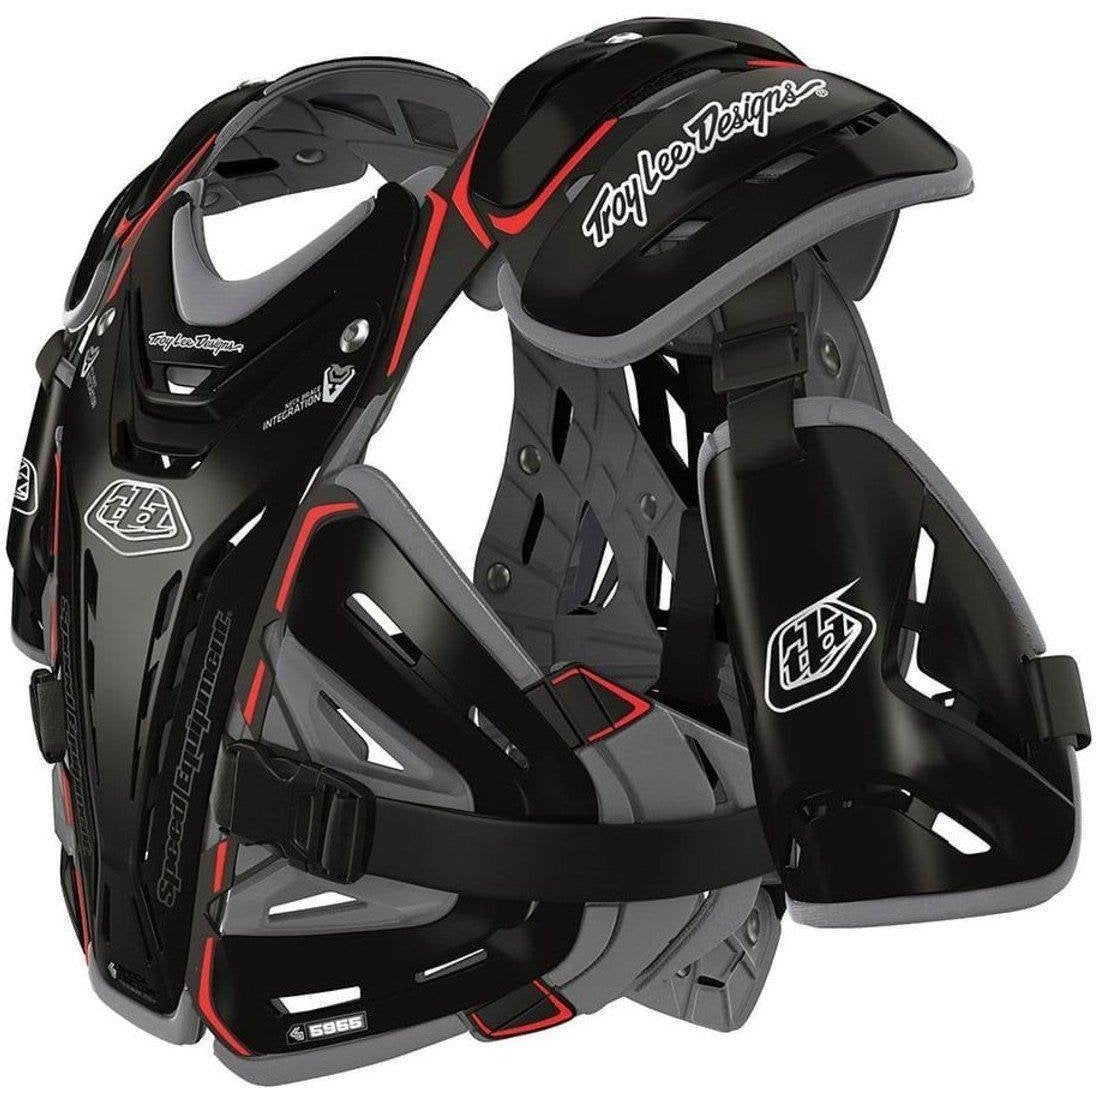 Troy Lee Designs-Troy Lee Designs 5955 Youth Body Guard Protection-BLACK-YOUTH-TLD503003203-saddleback-elite-performance-cycling